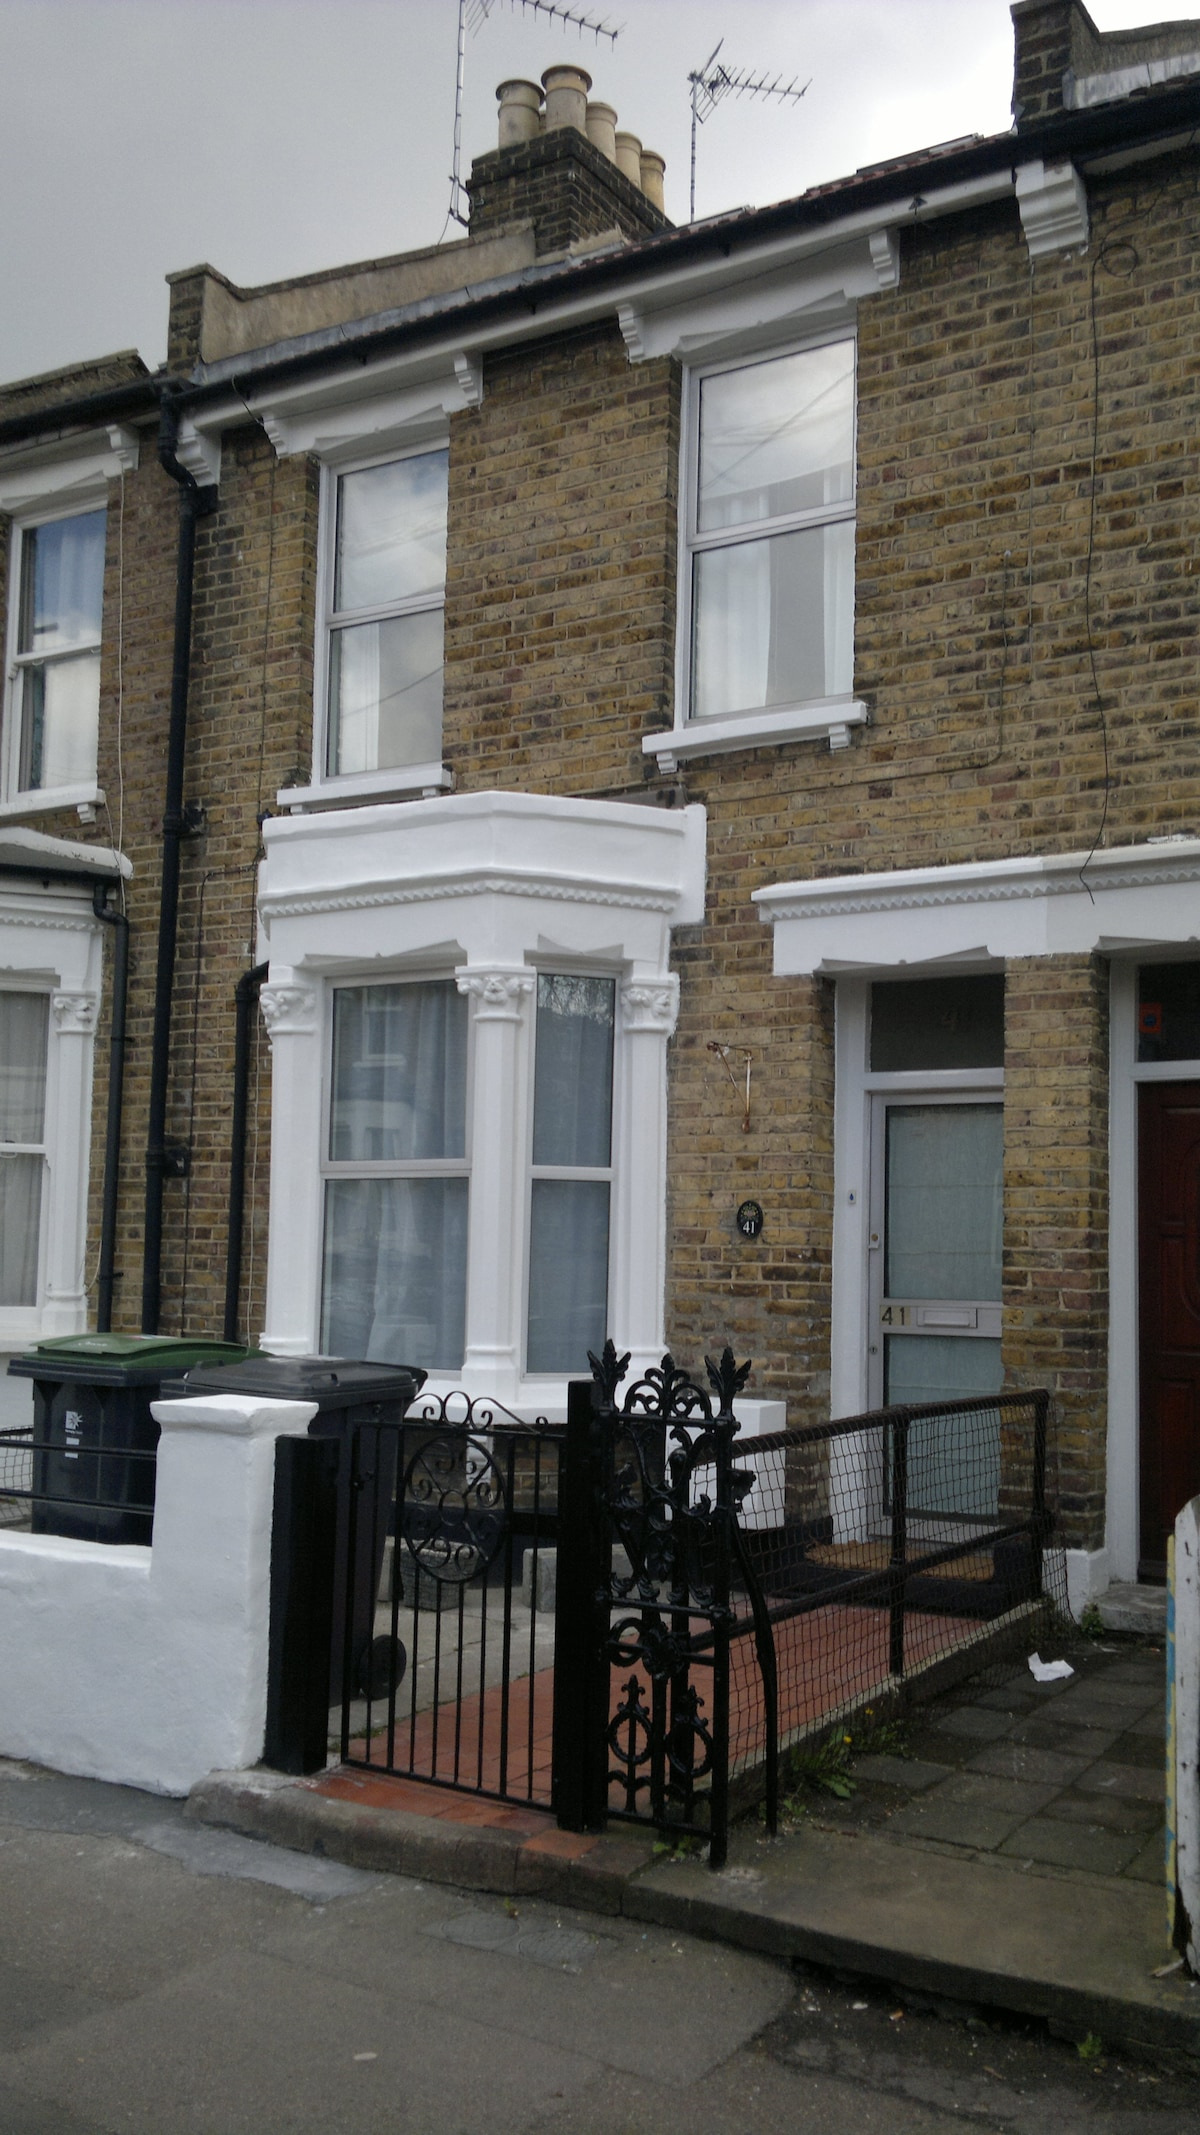 D&G Great House - BnB - single and multiple rooms available